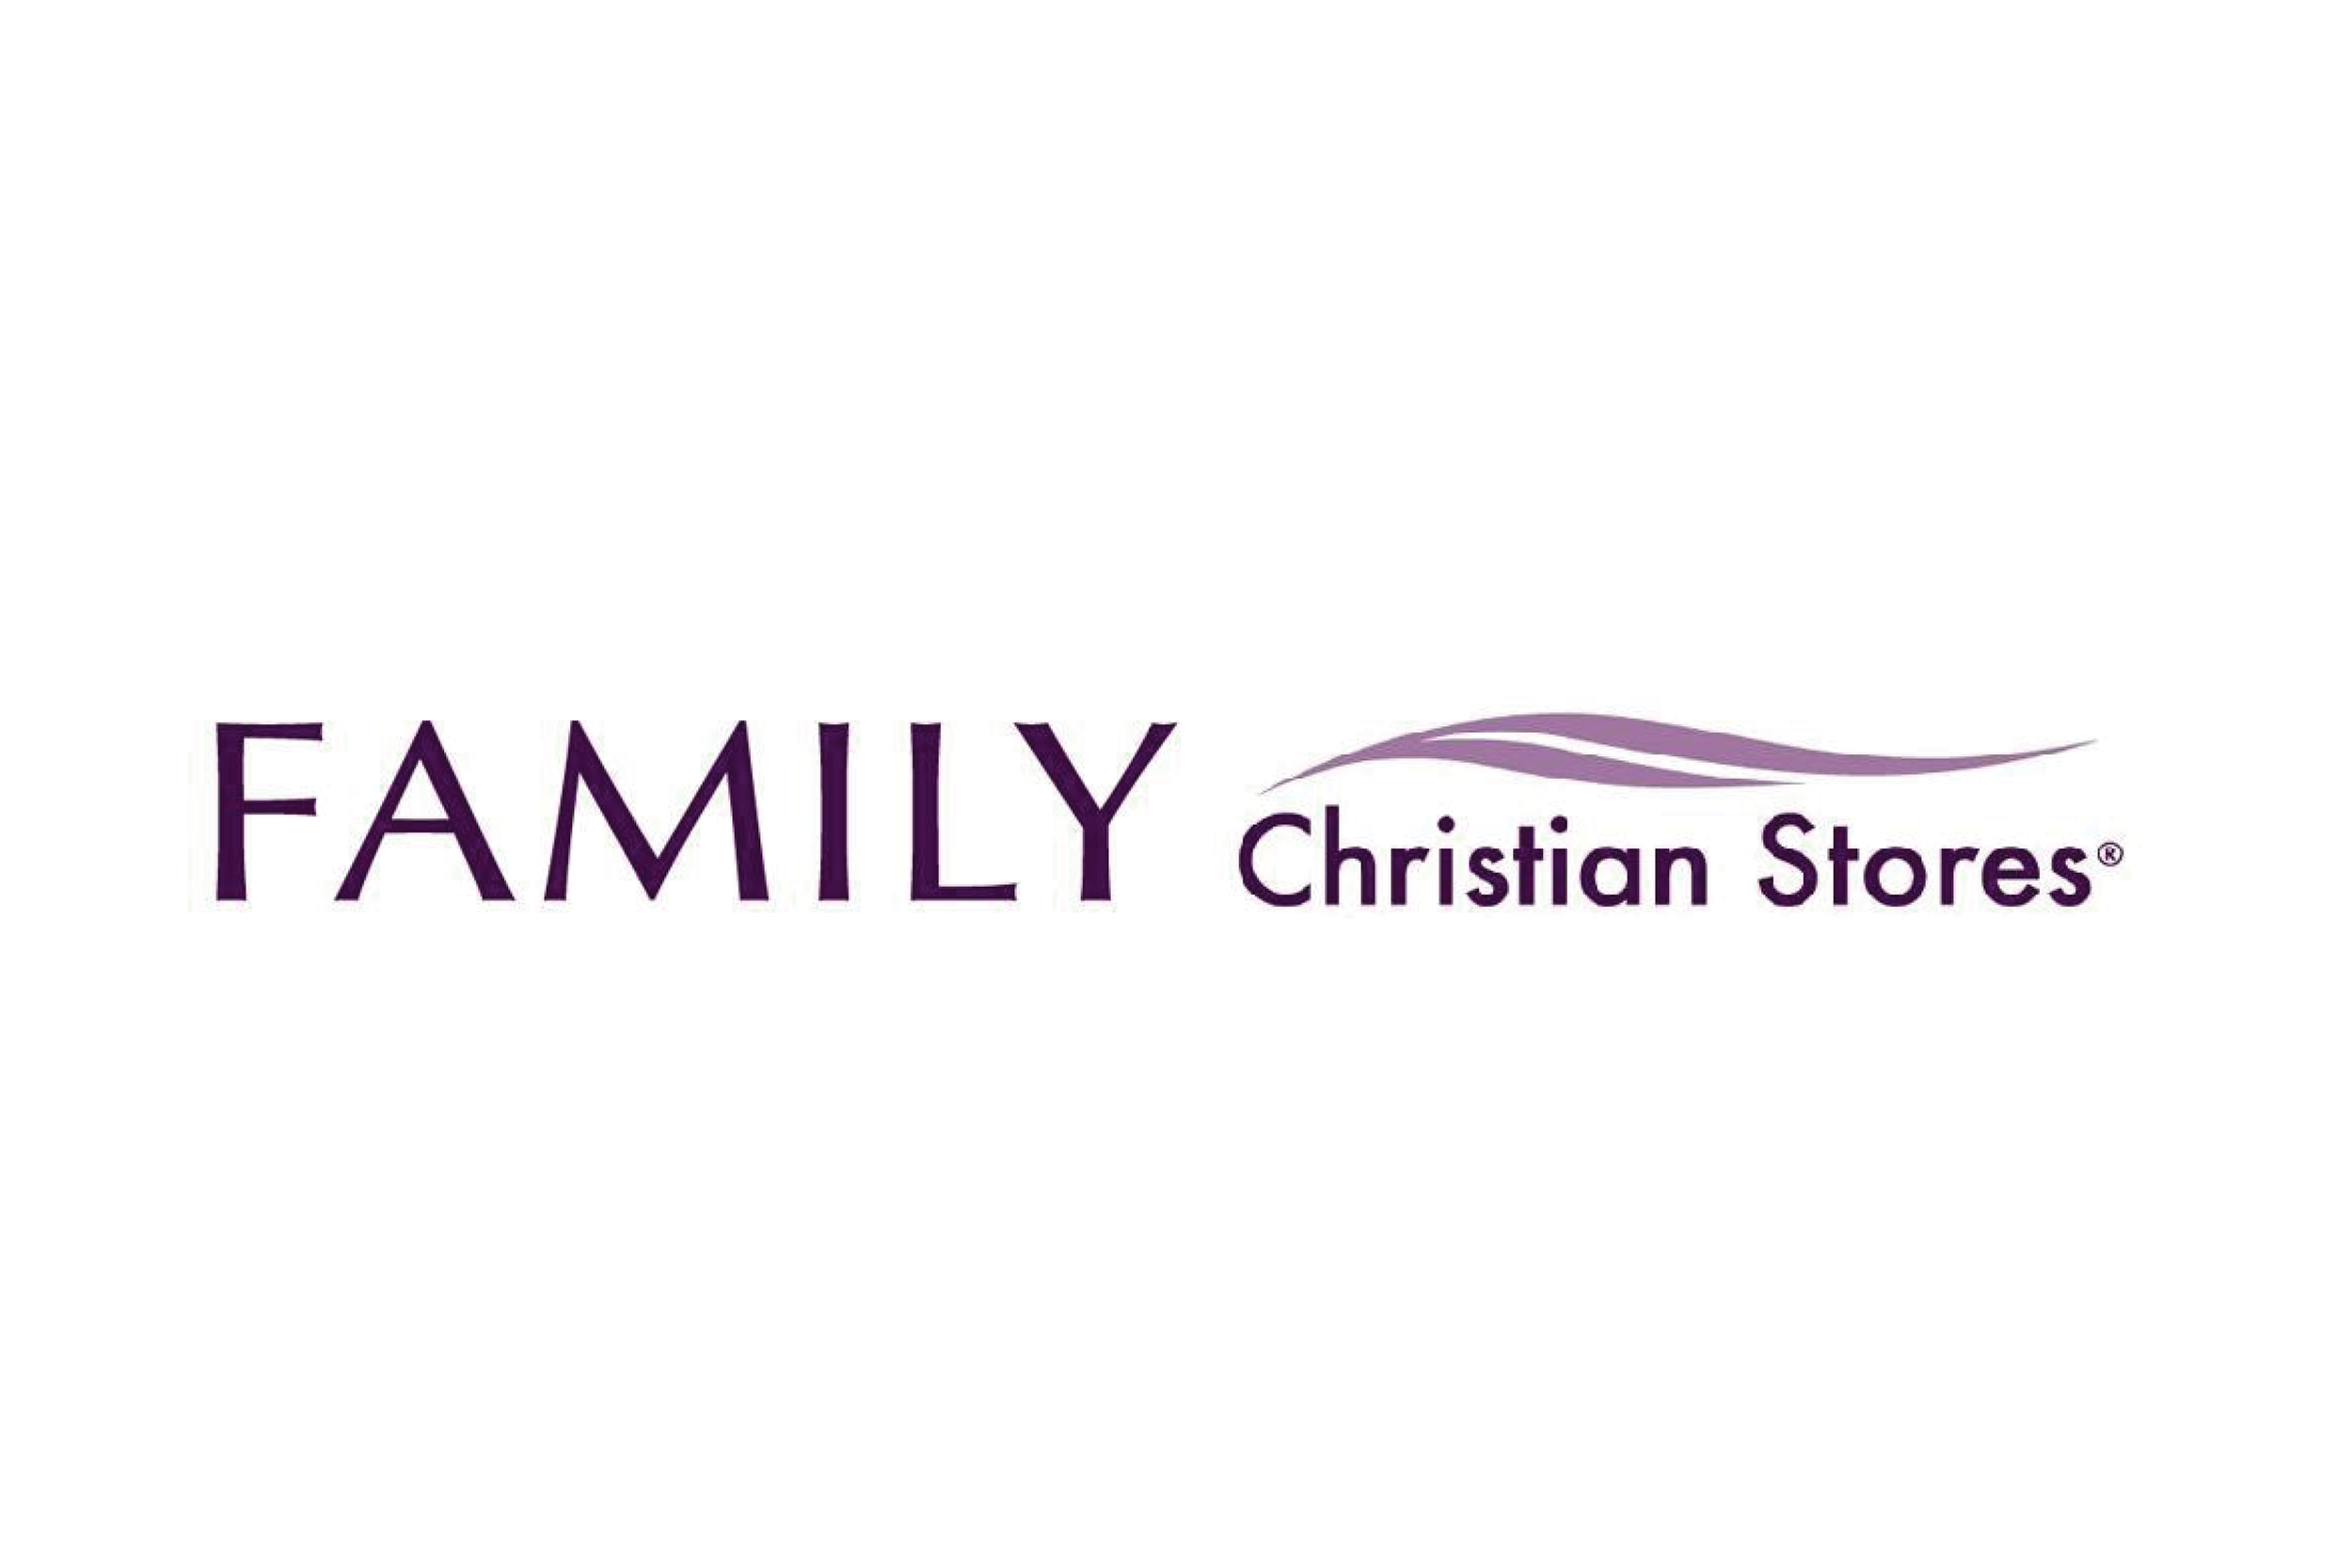 FamilyChristian.png